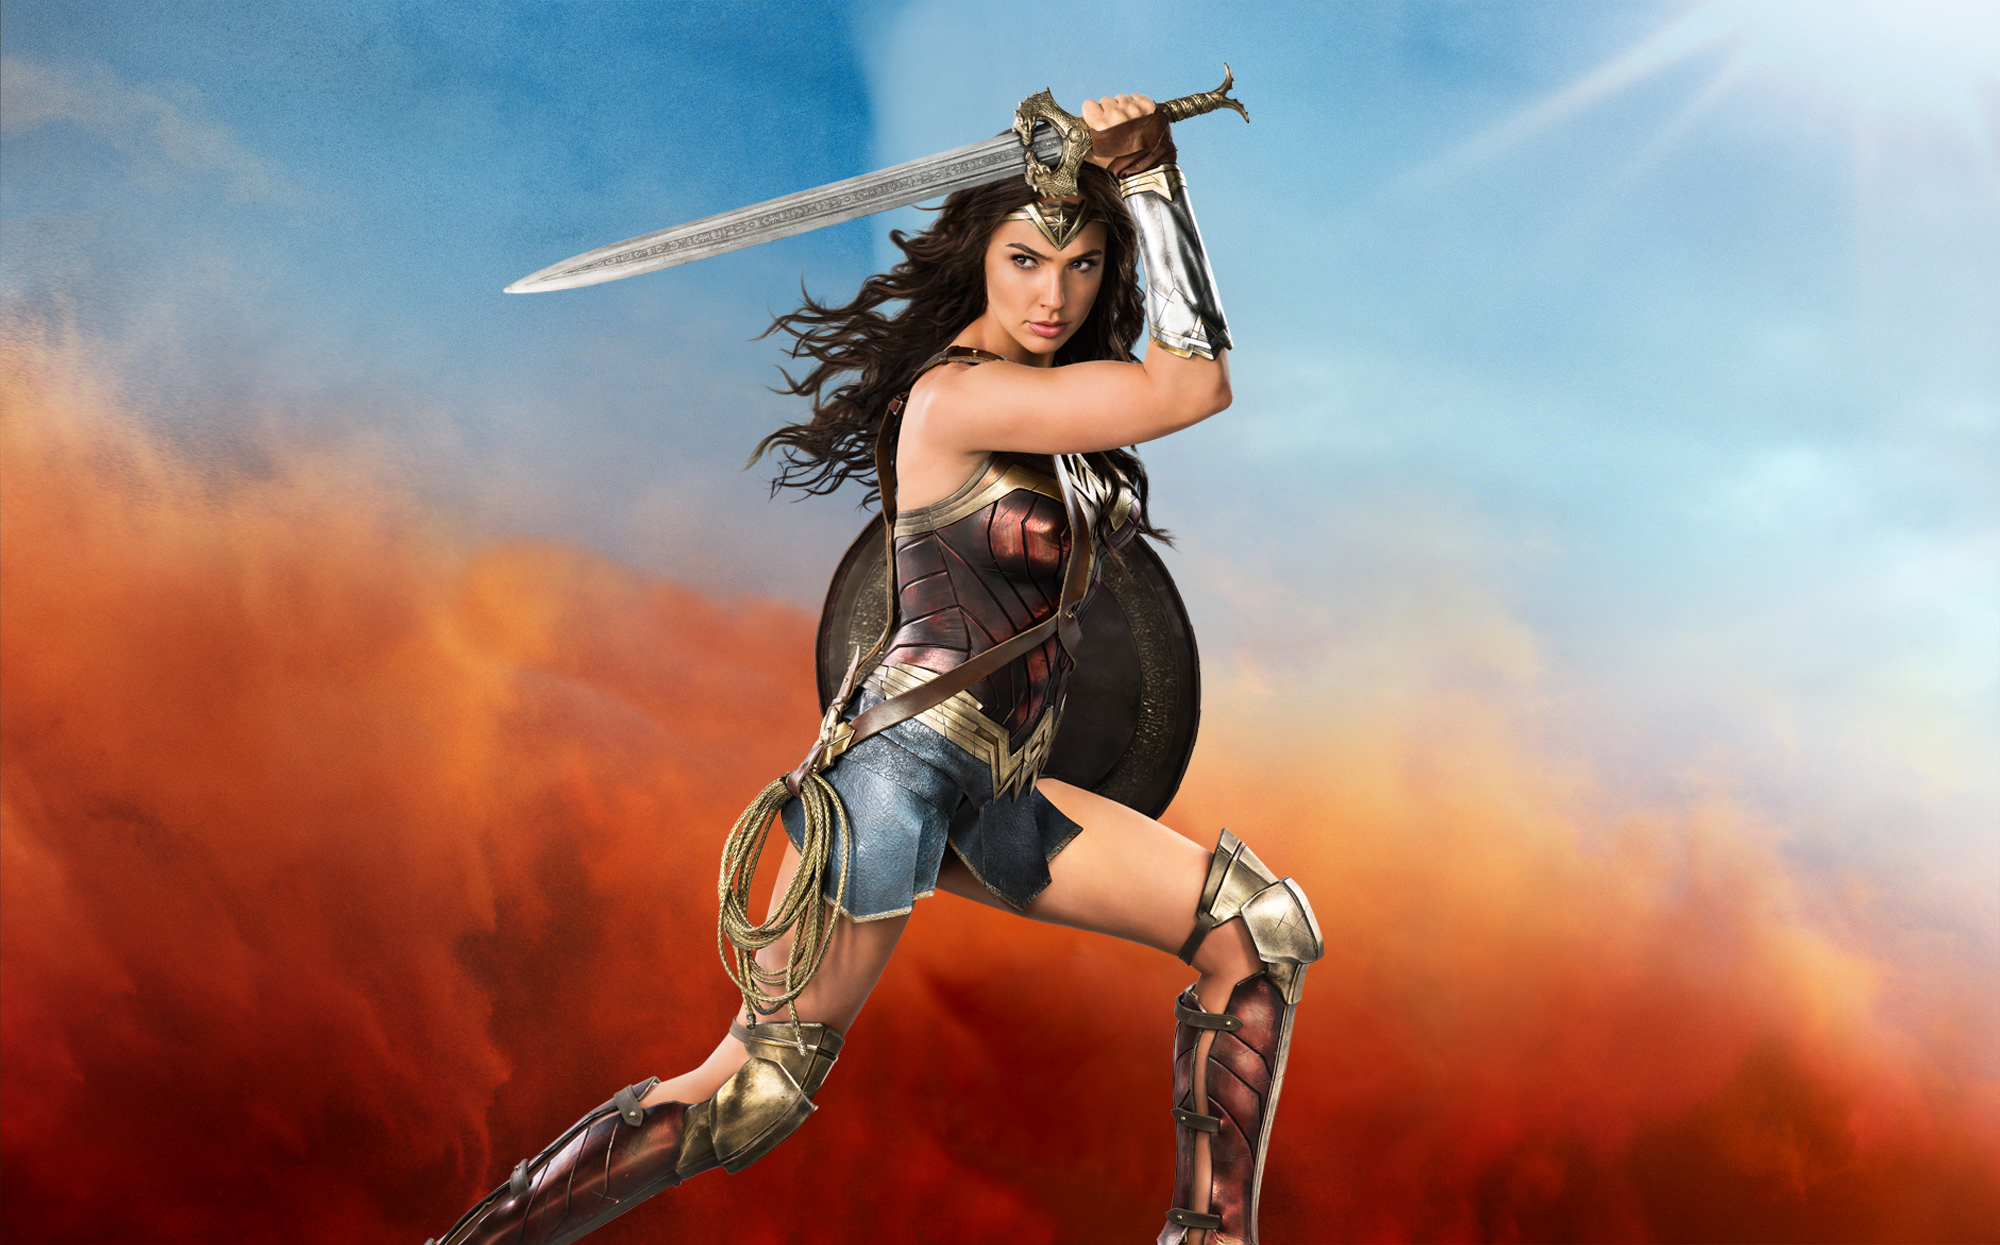 Wonder Woman Hd Wallpaper: Wonder Woman HD Wallpaper